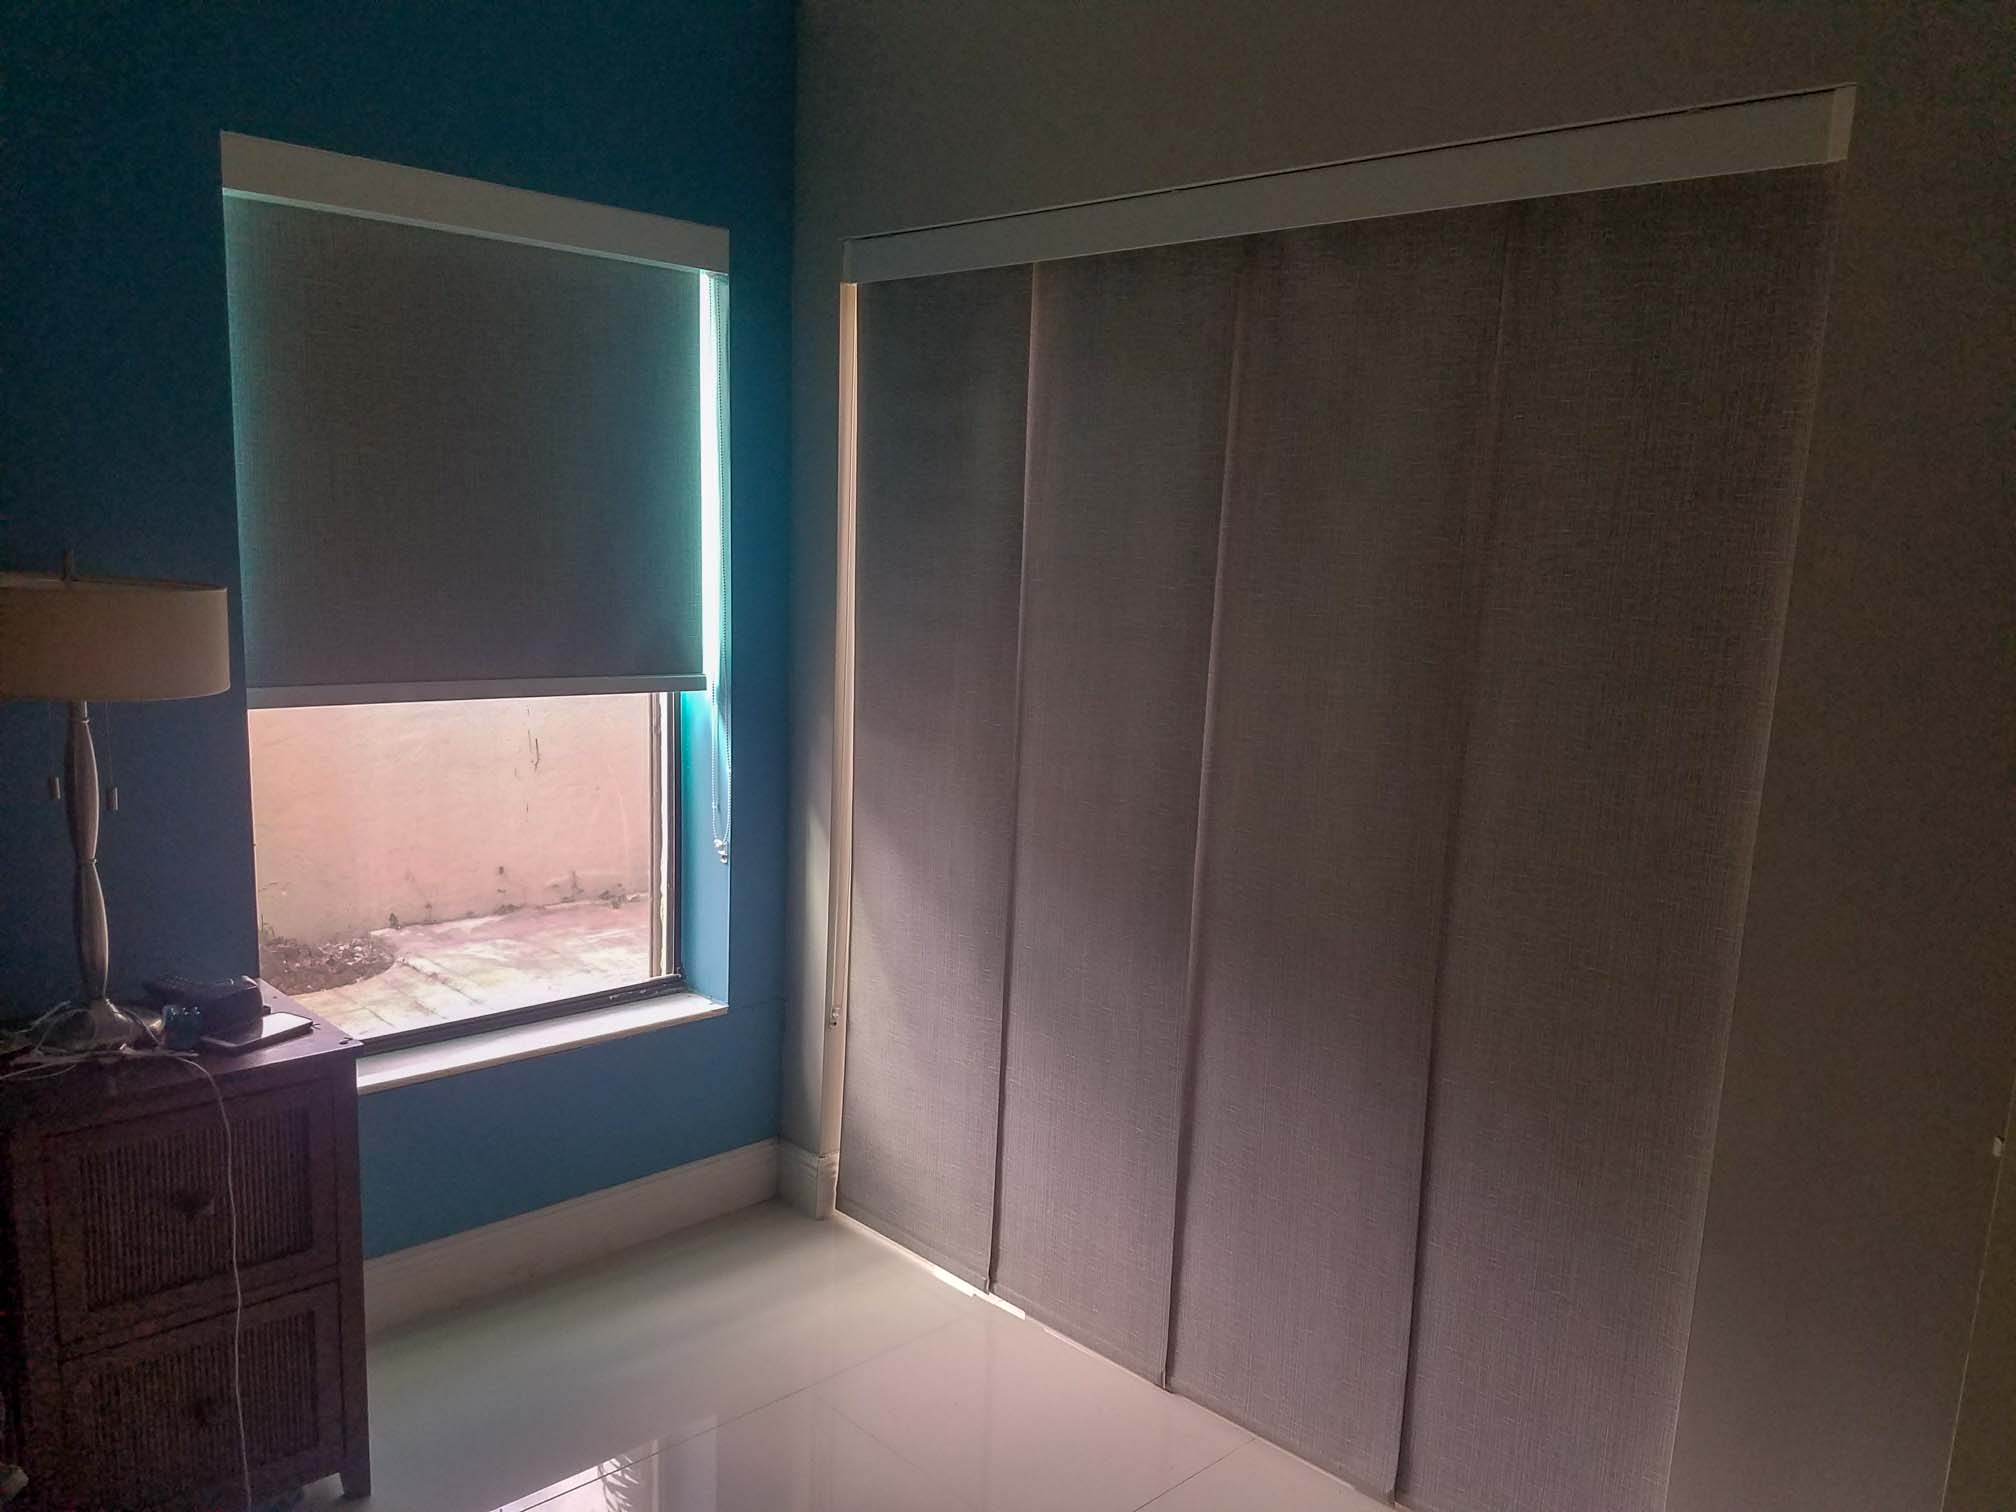 sliding panel curtains gallery SLIDING PANEL CURTAINS GALLERY 20180127 142427